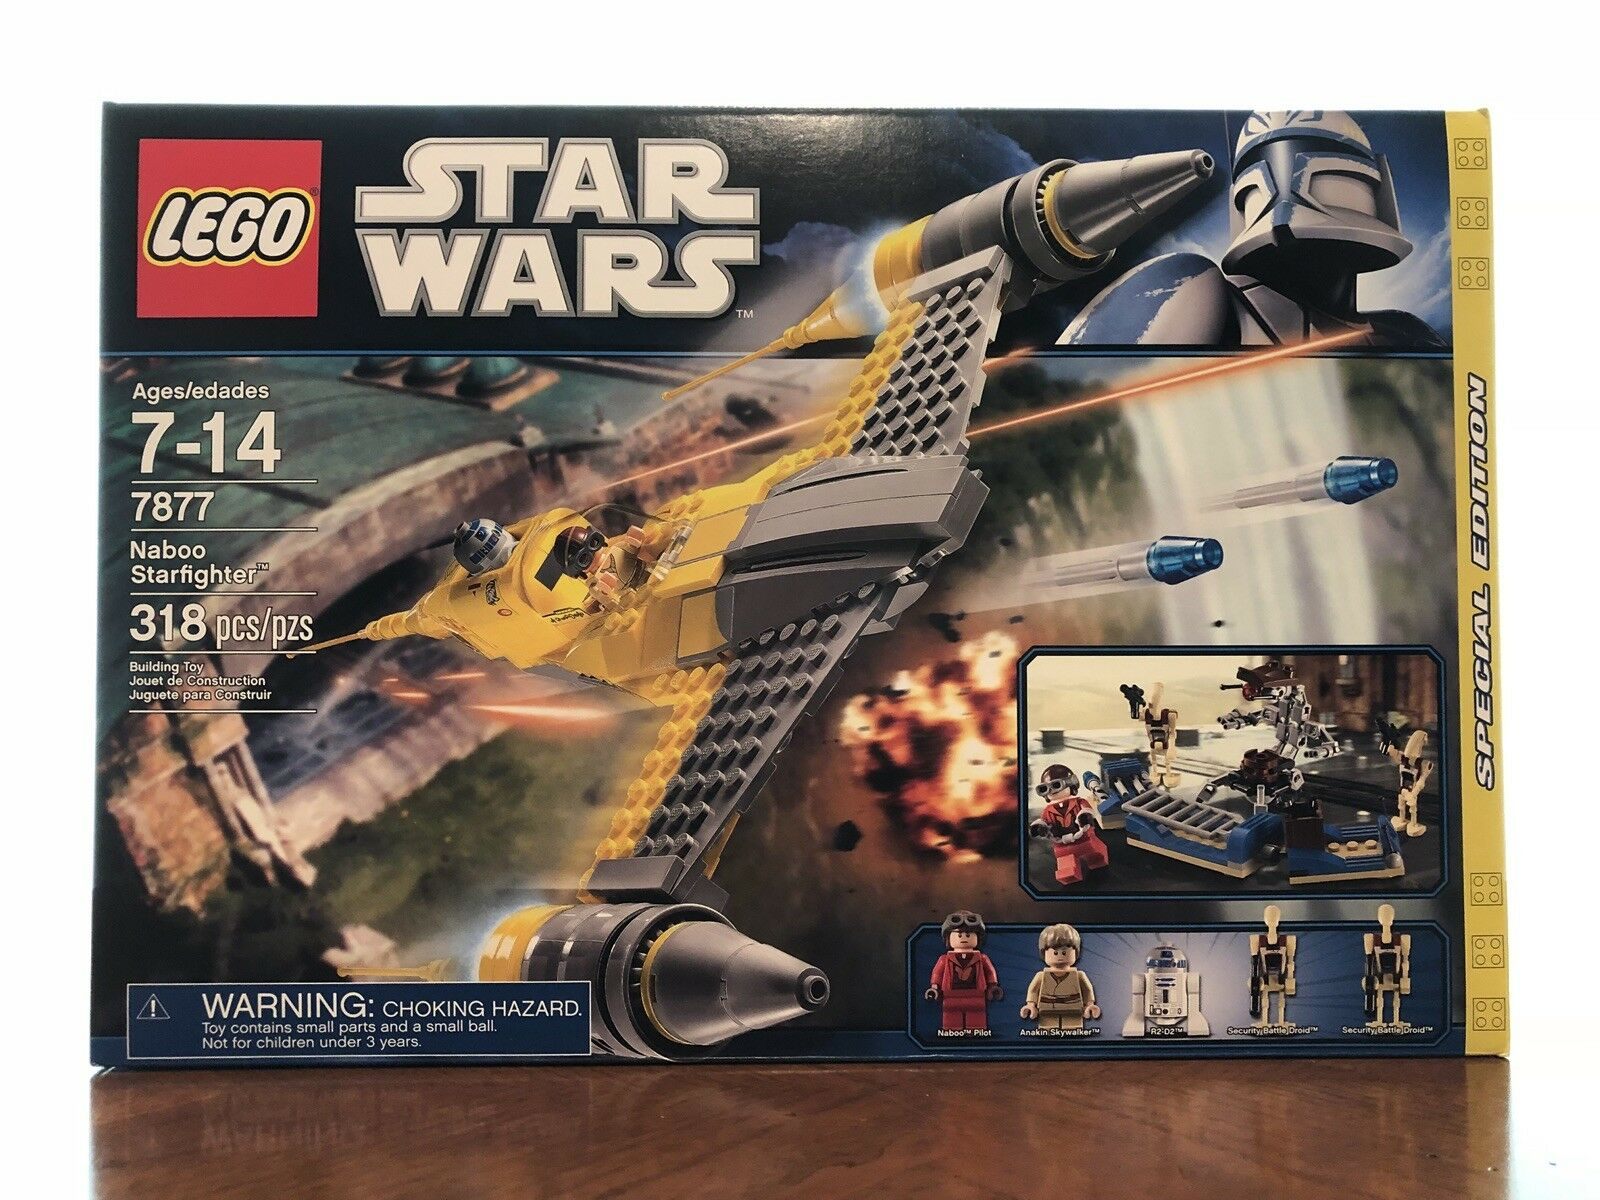 LEGO 7877 Star Wars Exclusive Special Edition - Naboo Starfighter (Discontinued)